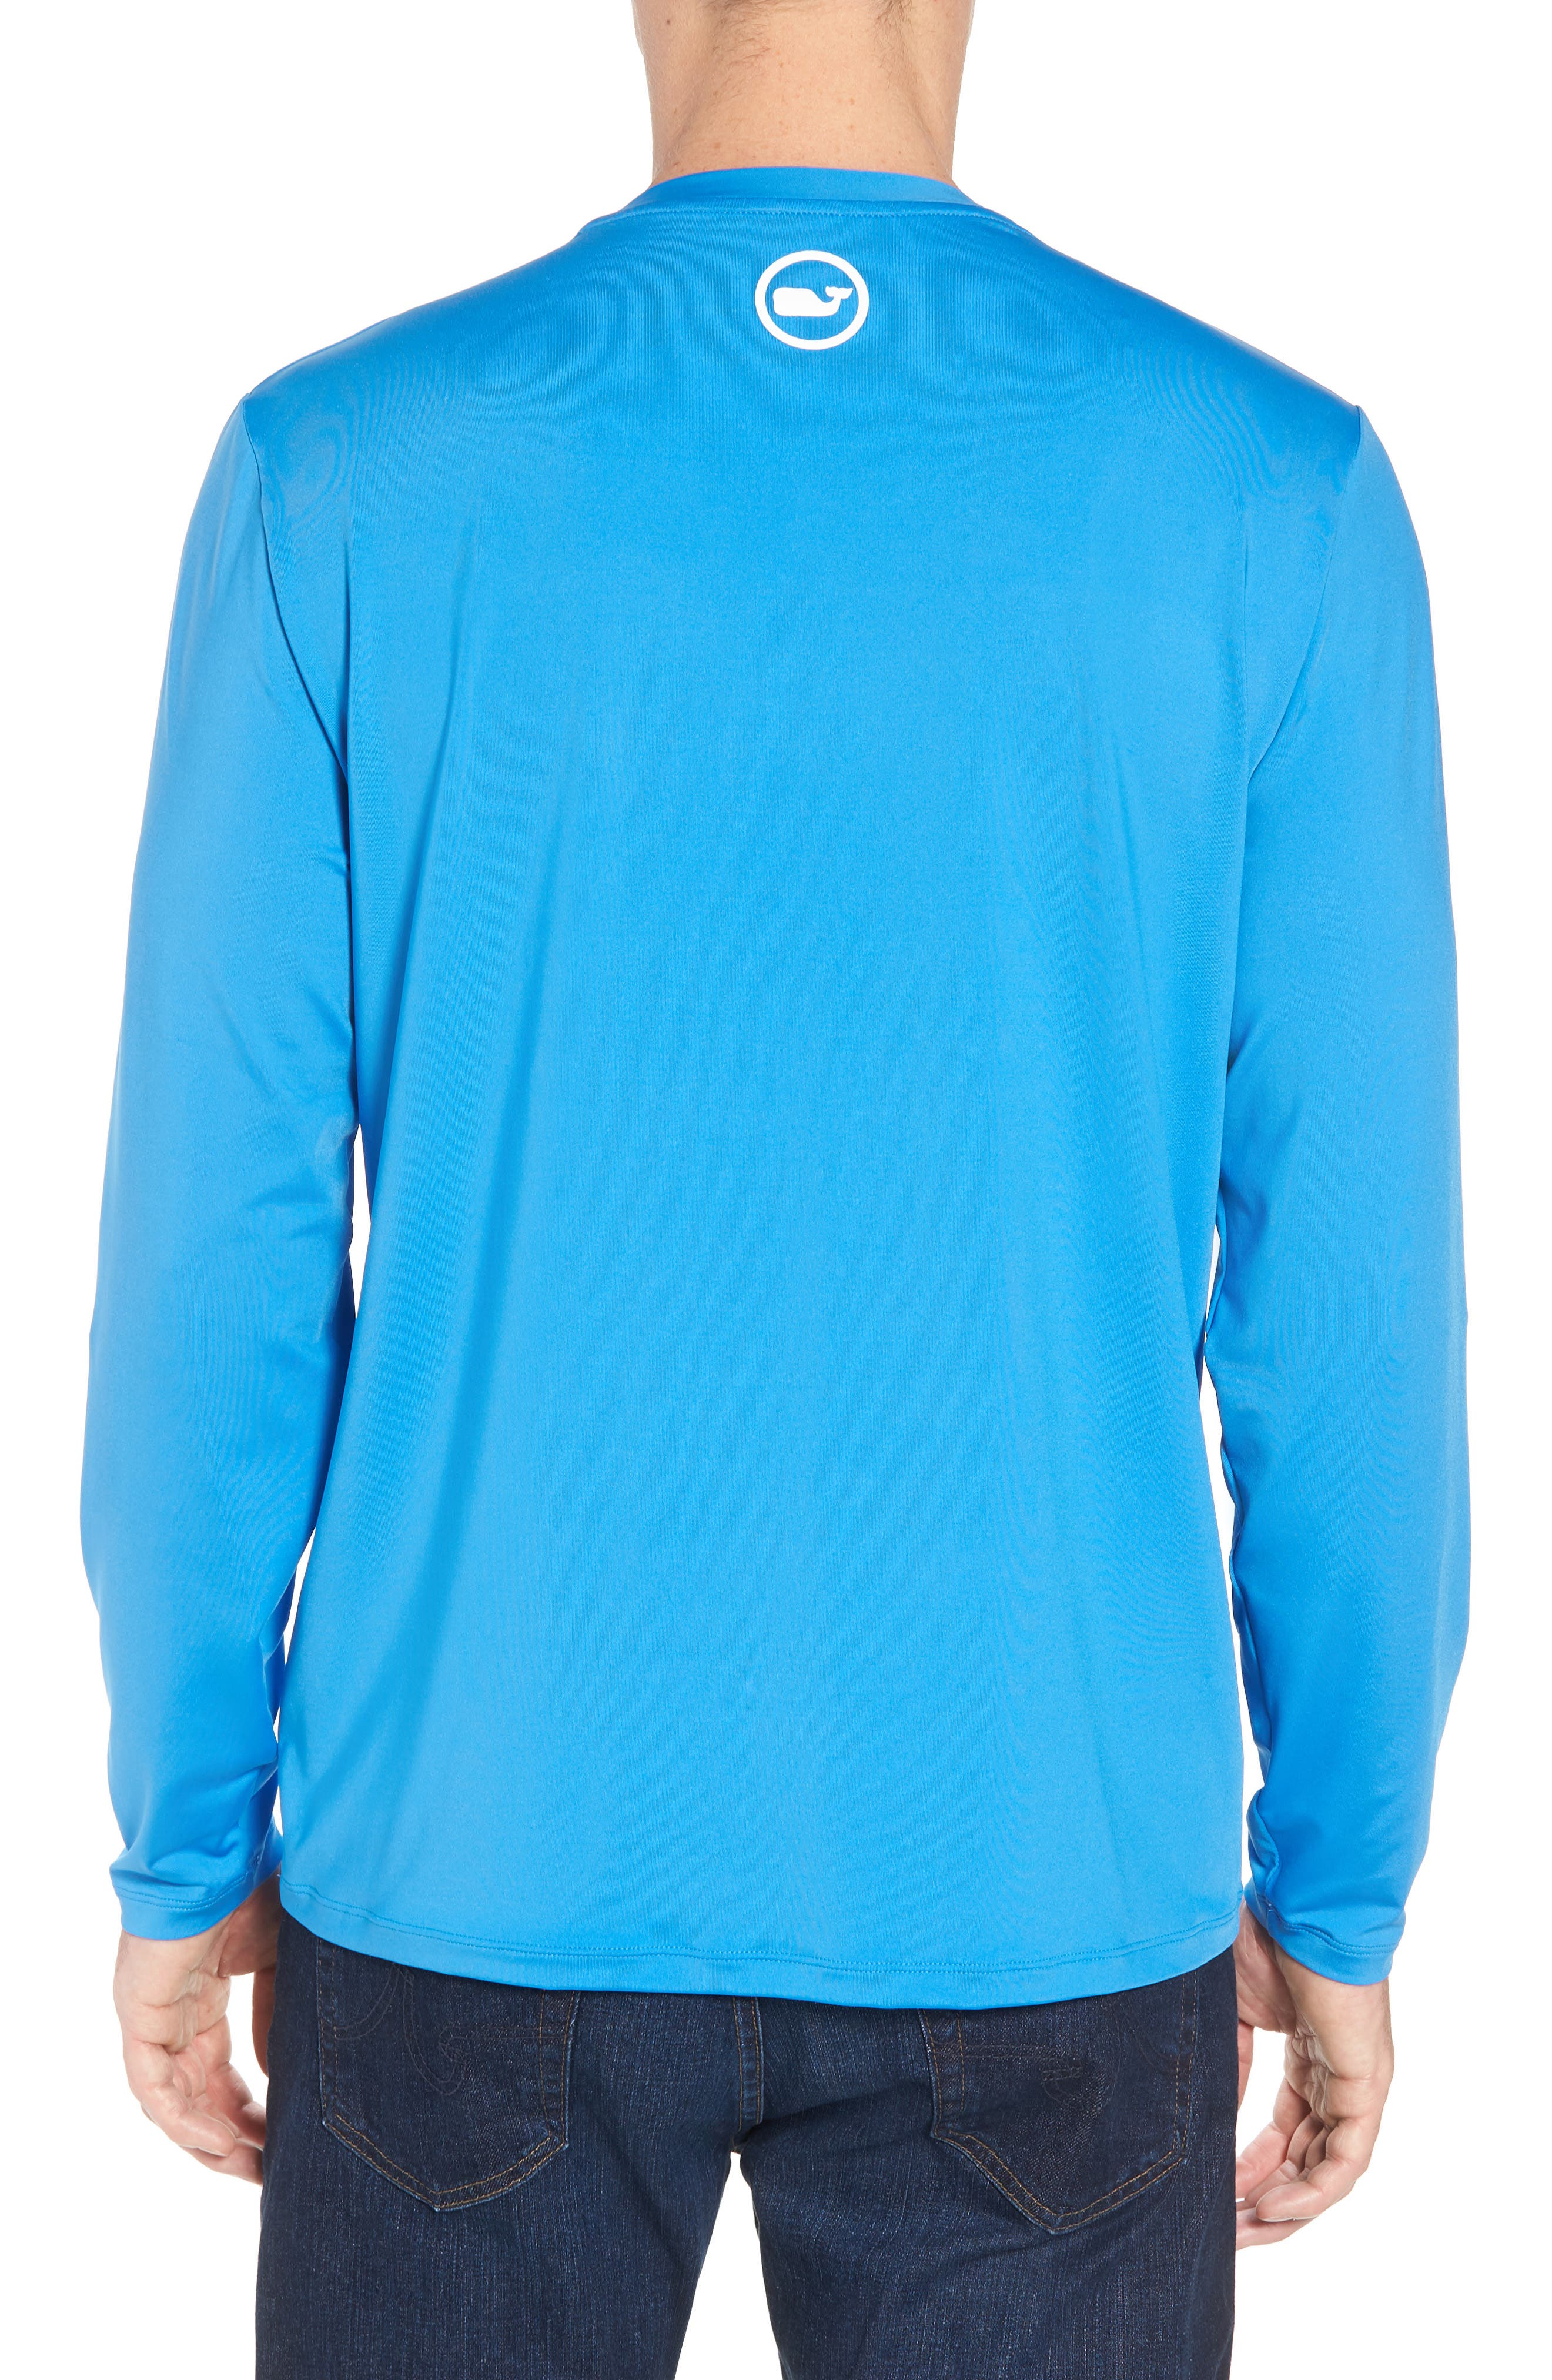 x Shark Week<sup>™</sup> Logo Long Sleeve T-Shirt,                             Alternate thumbnail 2, color,